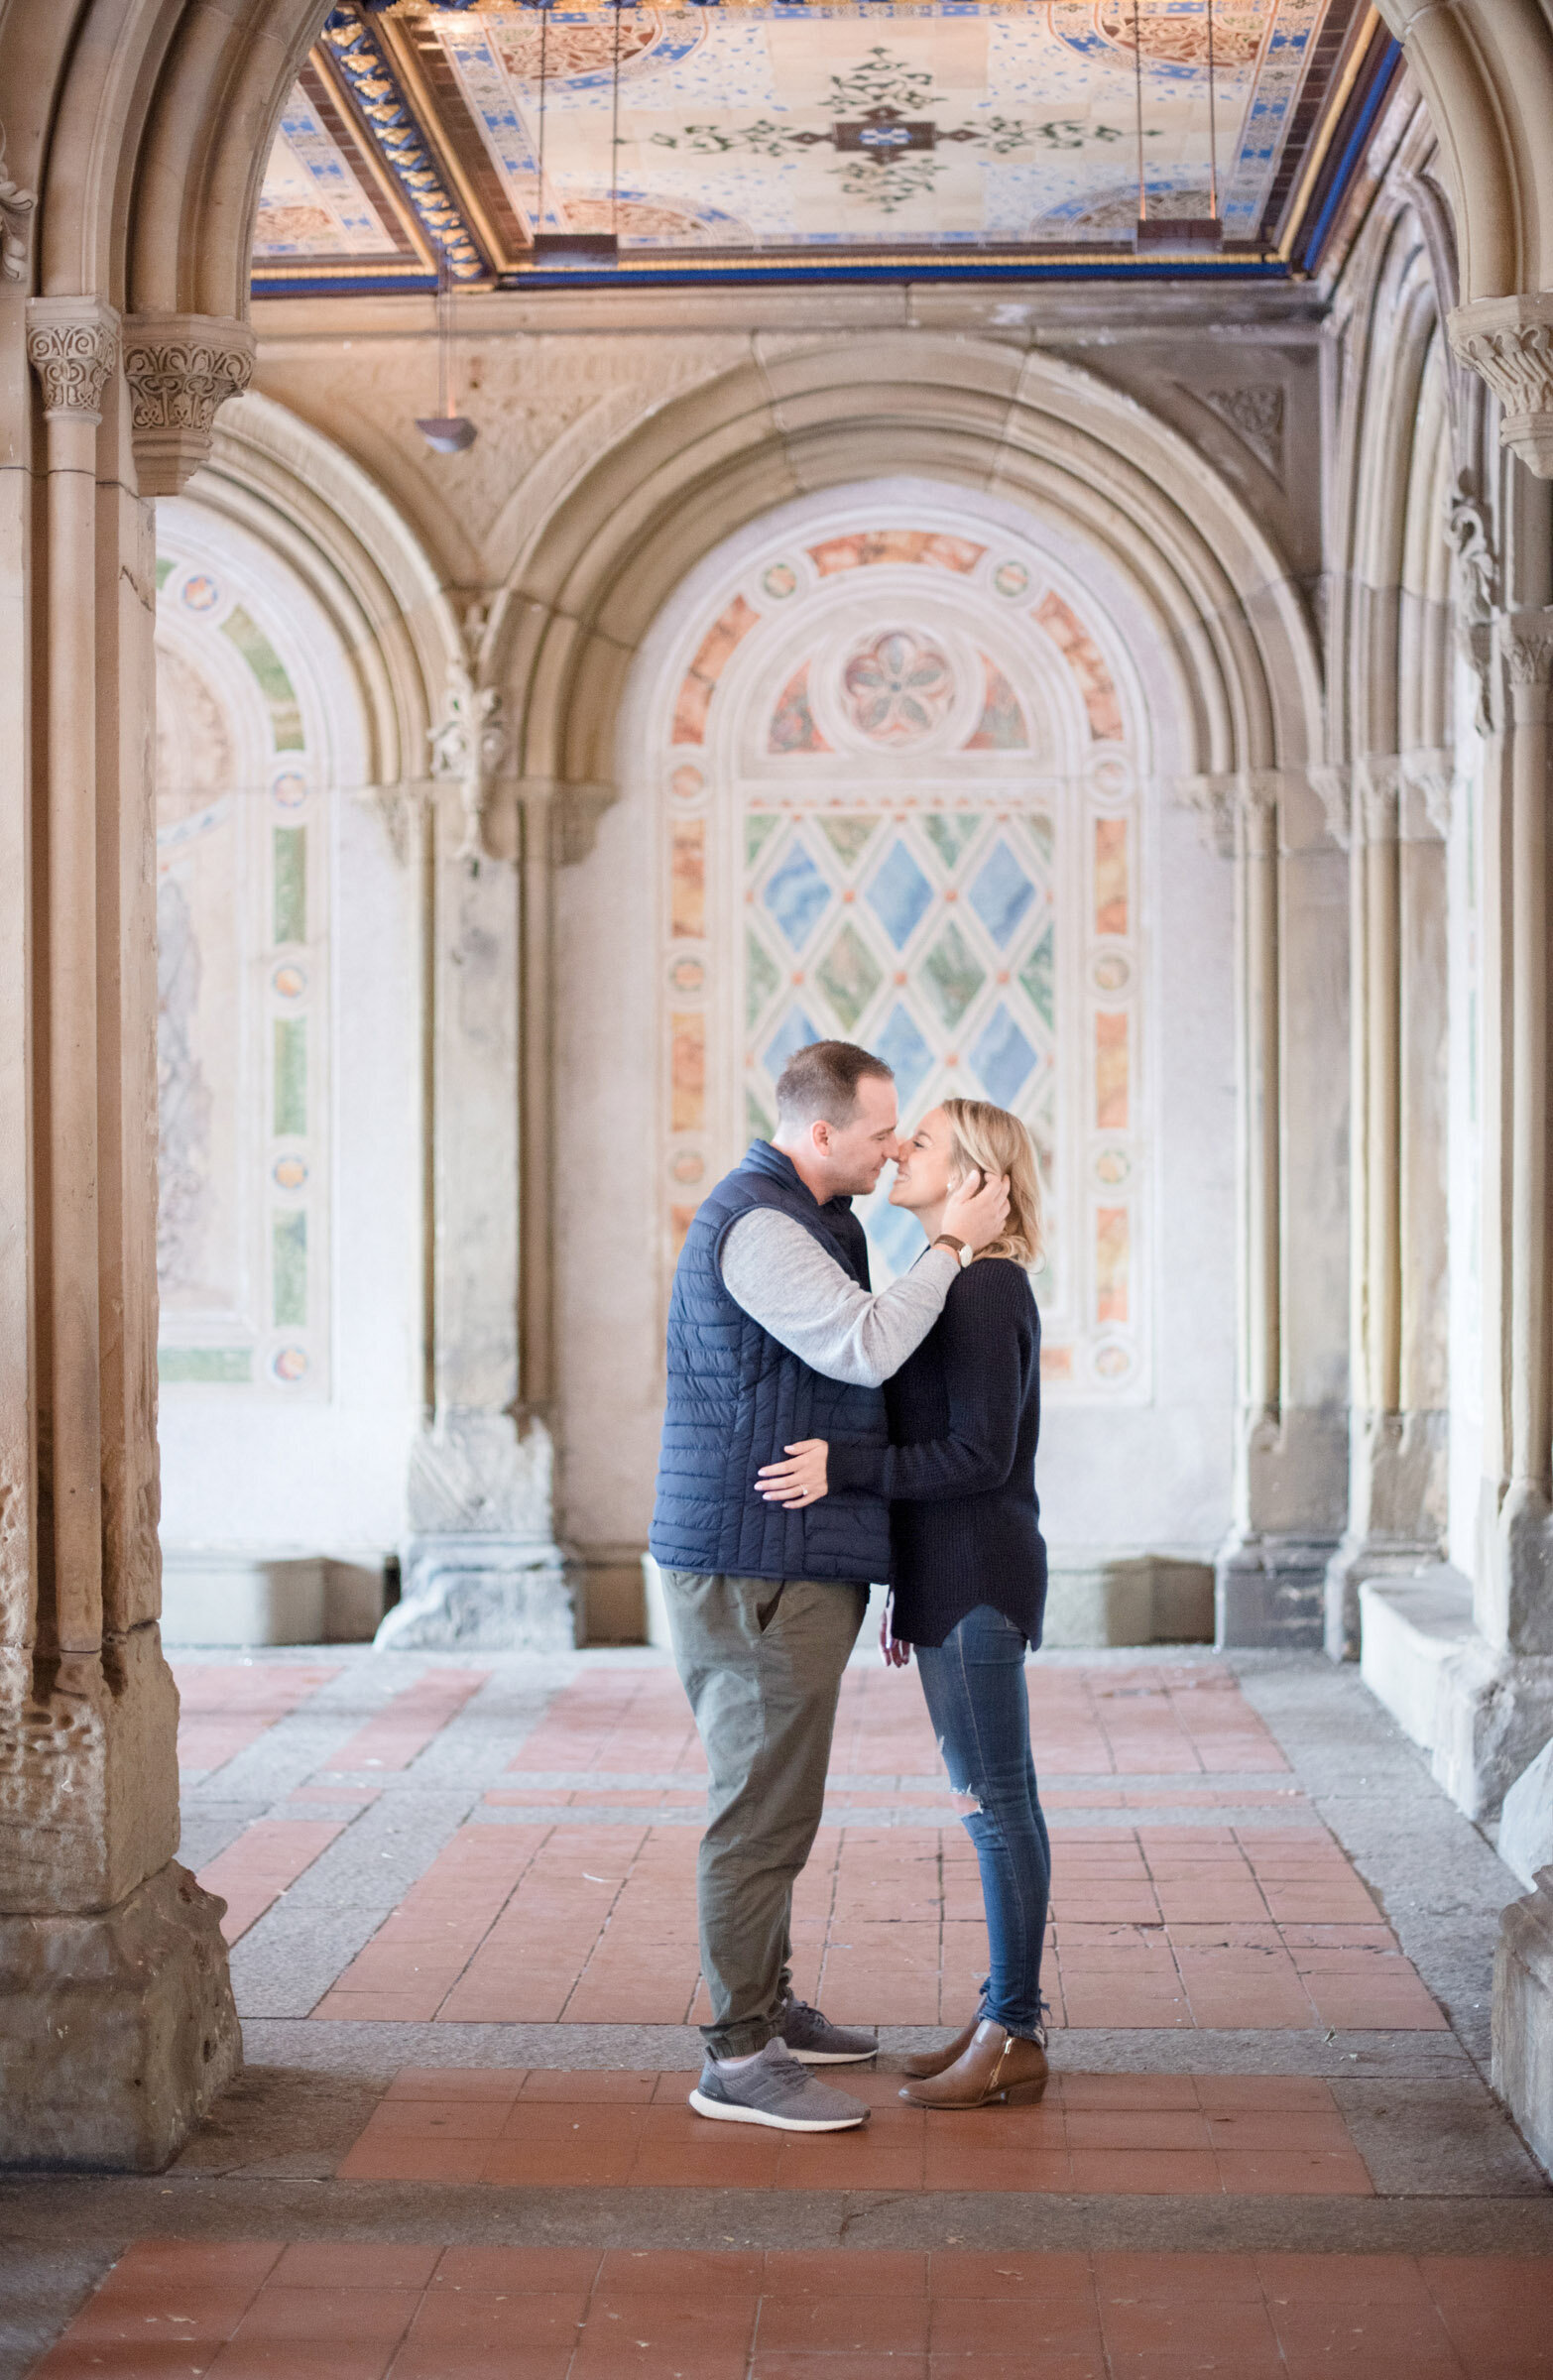 63-hudson-valley-ny-engagement-photographer